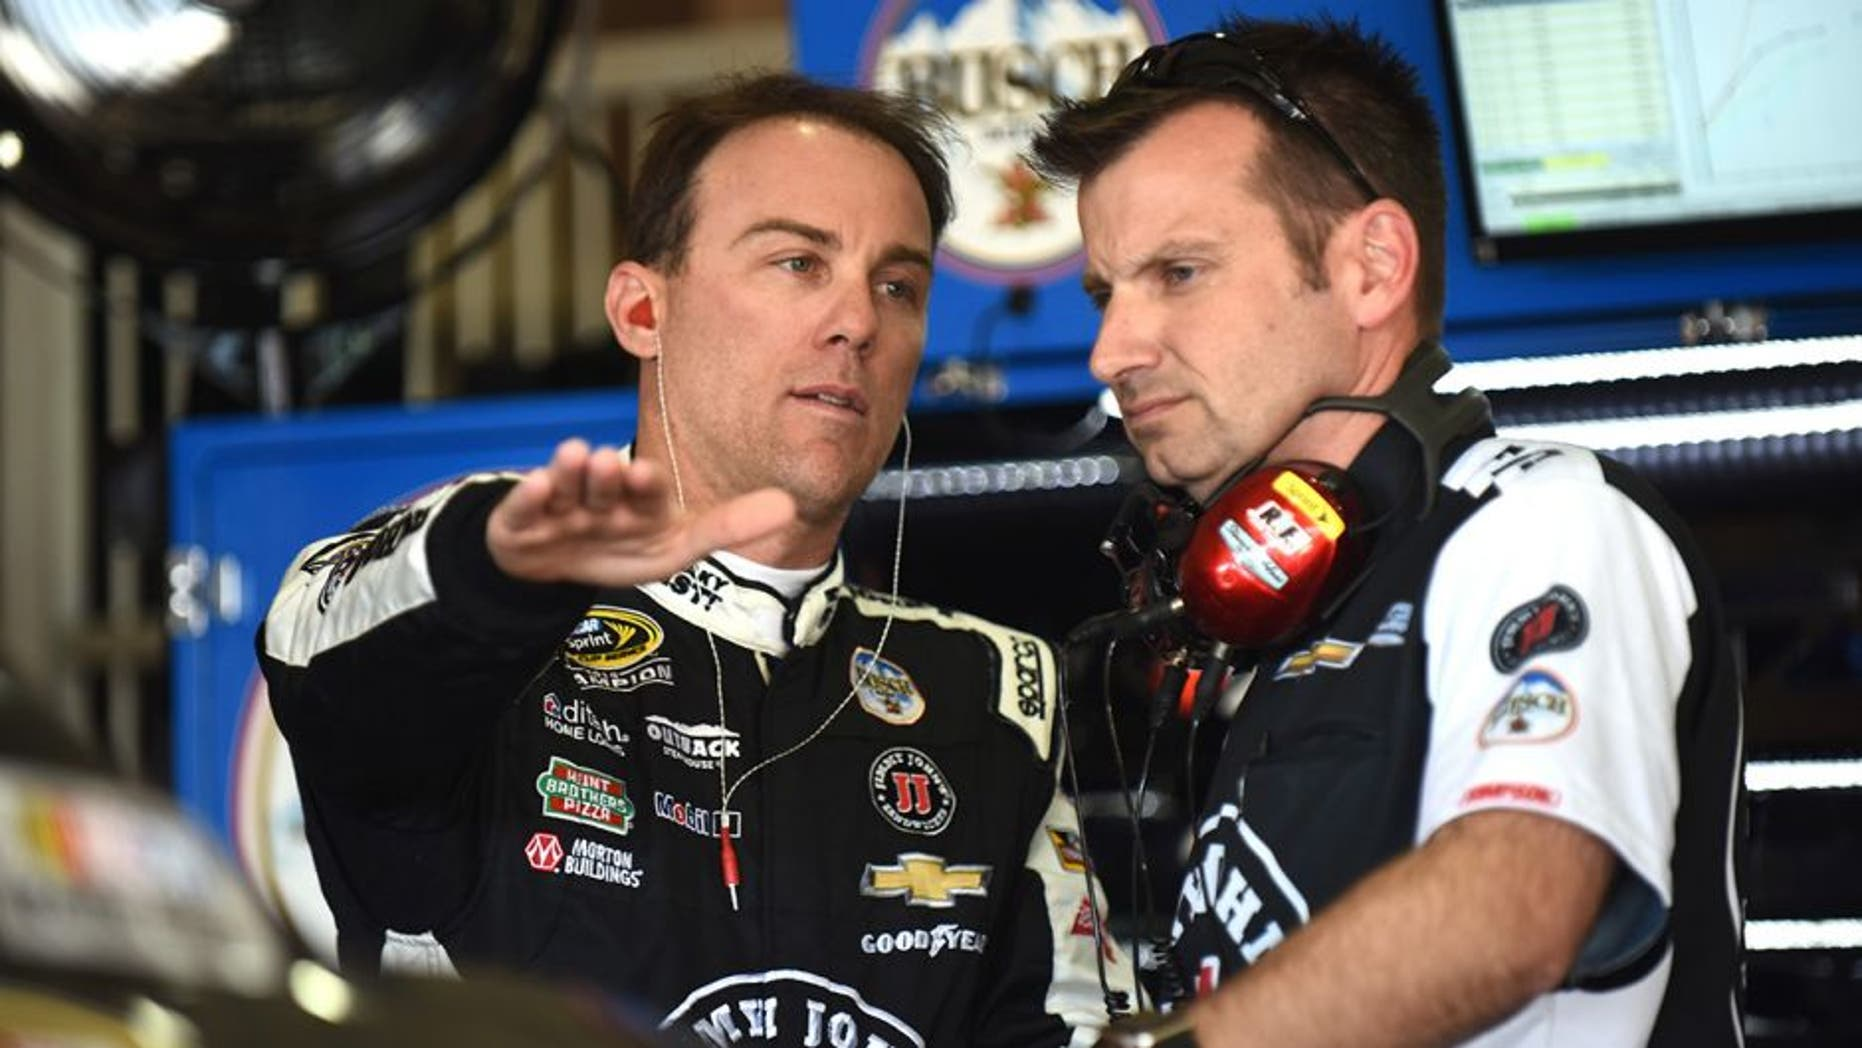 FONTANA, CA - MARCH 18: Kevin Harvick, driver of the #4 Jimmy John's Chevrolet, talks to his crew chief, Rodney Childers, during practice for the NASCAR Sprint Cup Series Auto Club 400 at Auto Club Speedway on March 18, 2016 in Fontana, California. (Photo by Jonathan Moore/Getty Images)